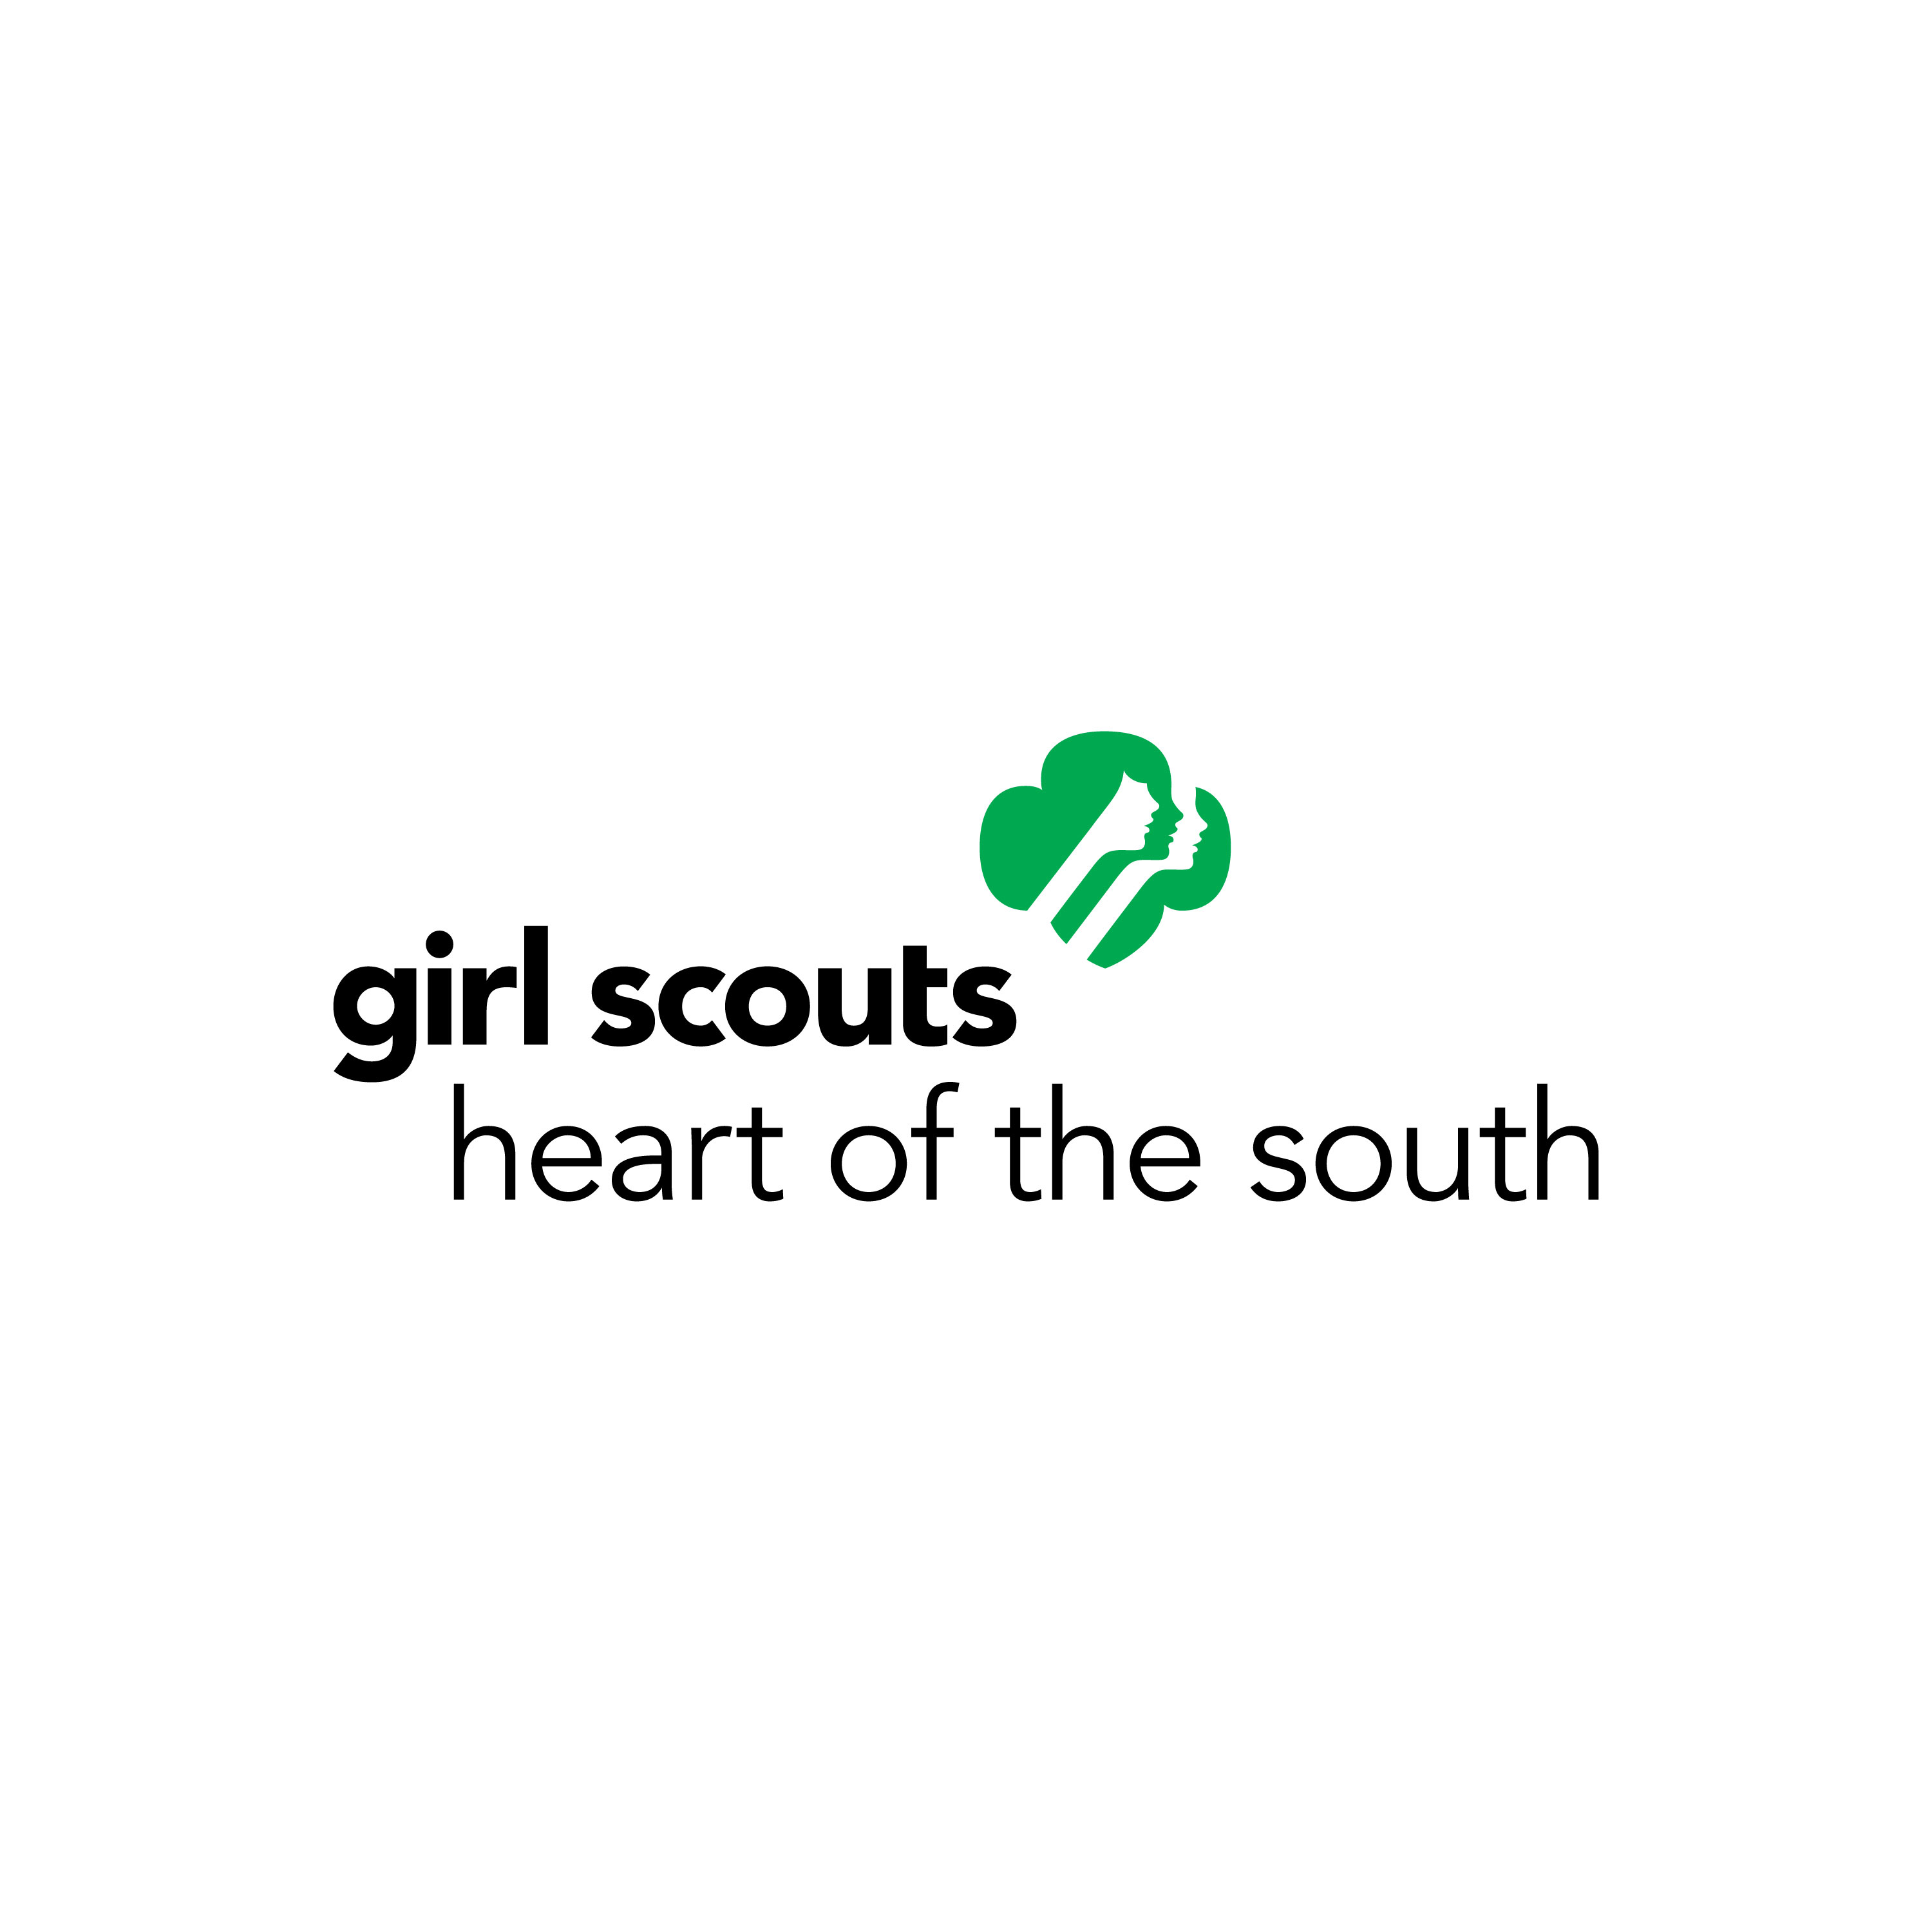 Girl Scout Logo Usage   Girl Scouts Heart of the South